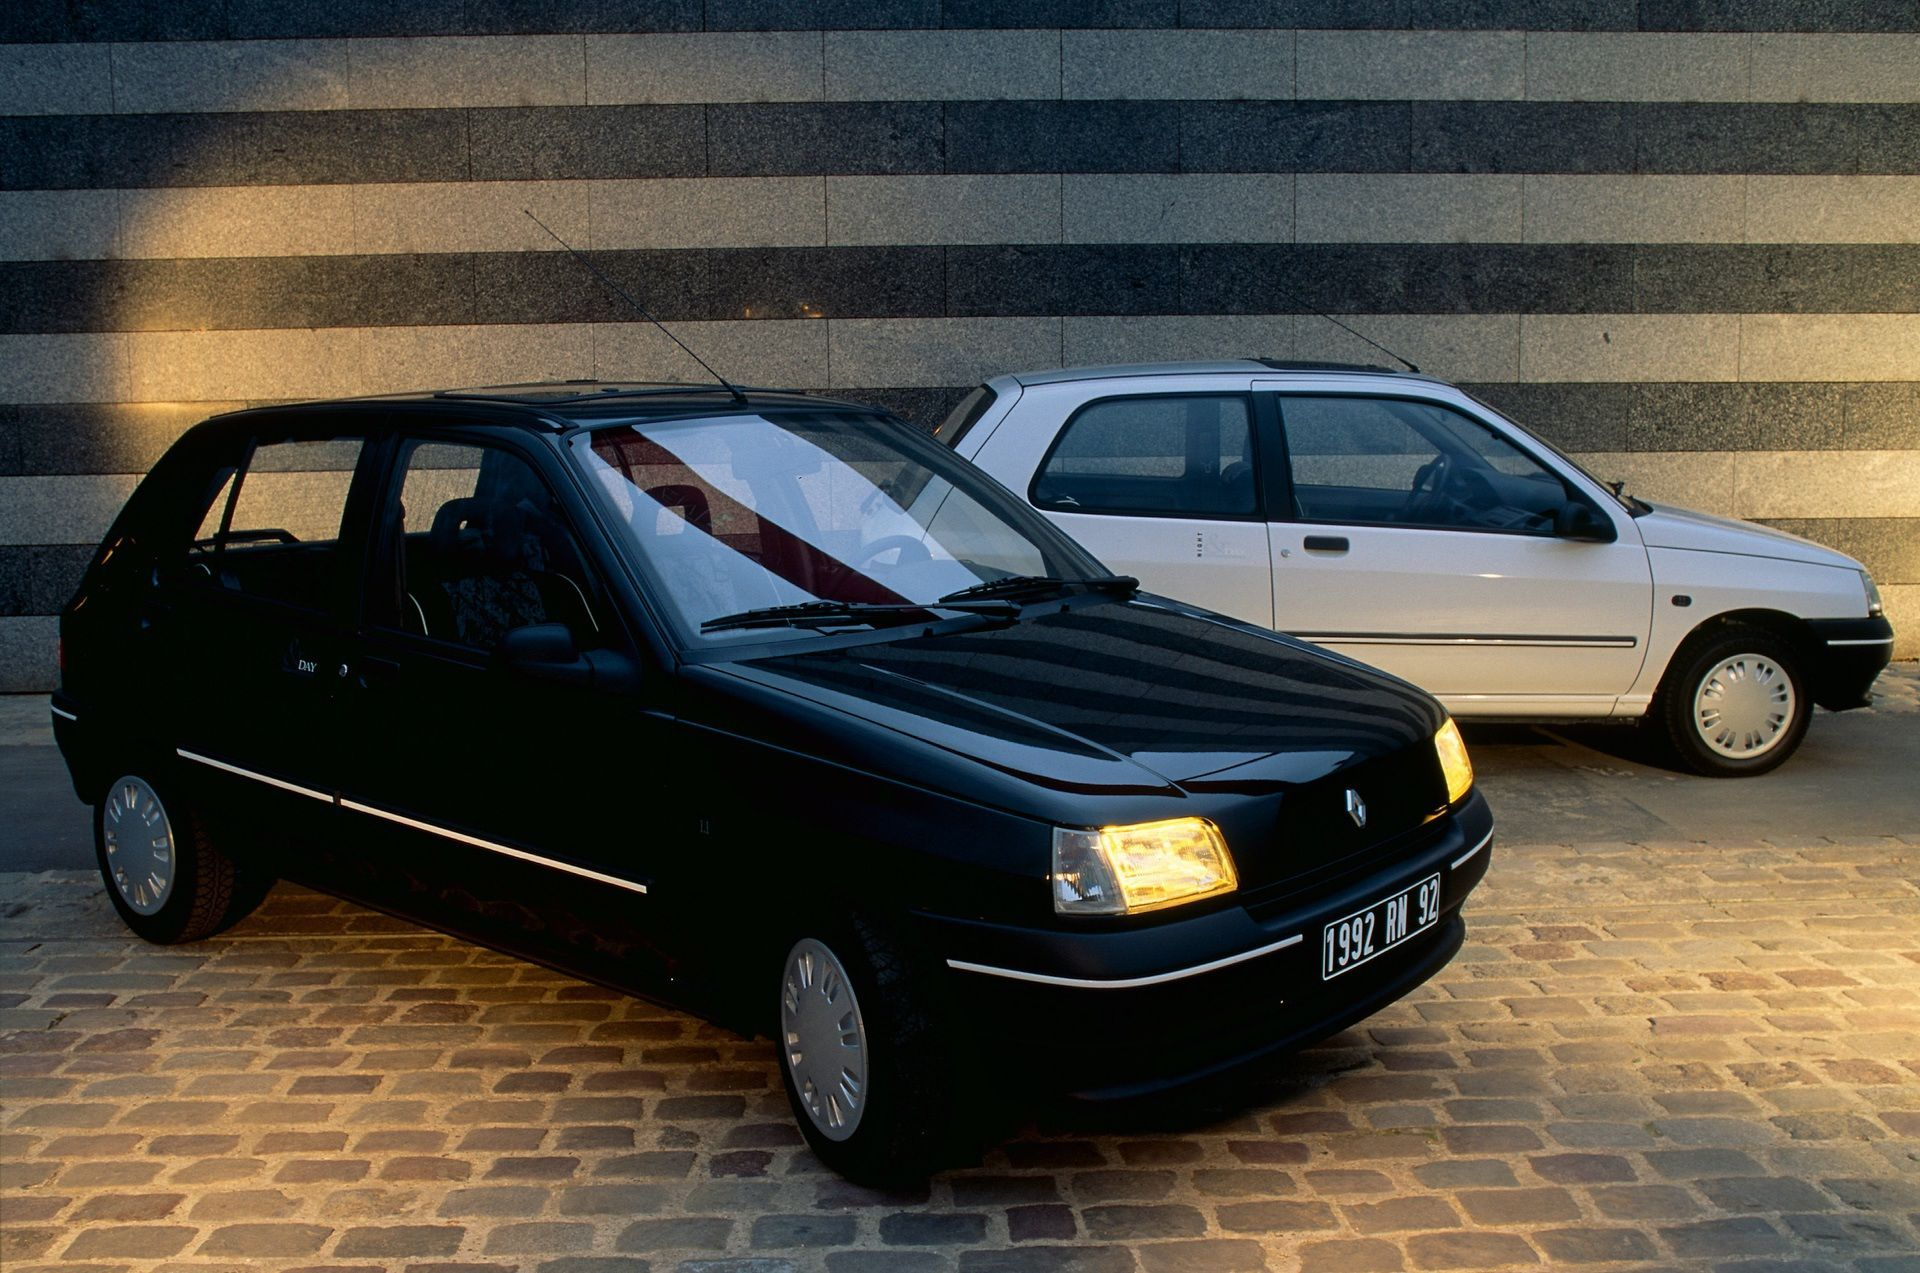 2020-30-years-of-Renault-CLIO-Renault-CLIO-I-1990-1999-7